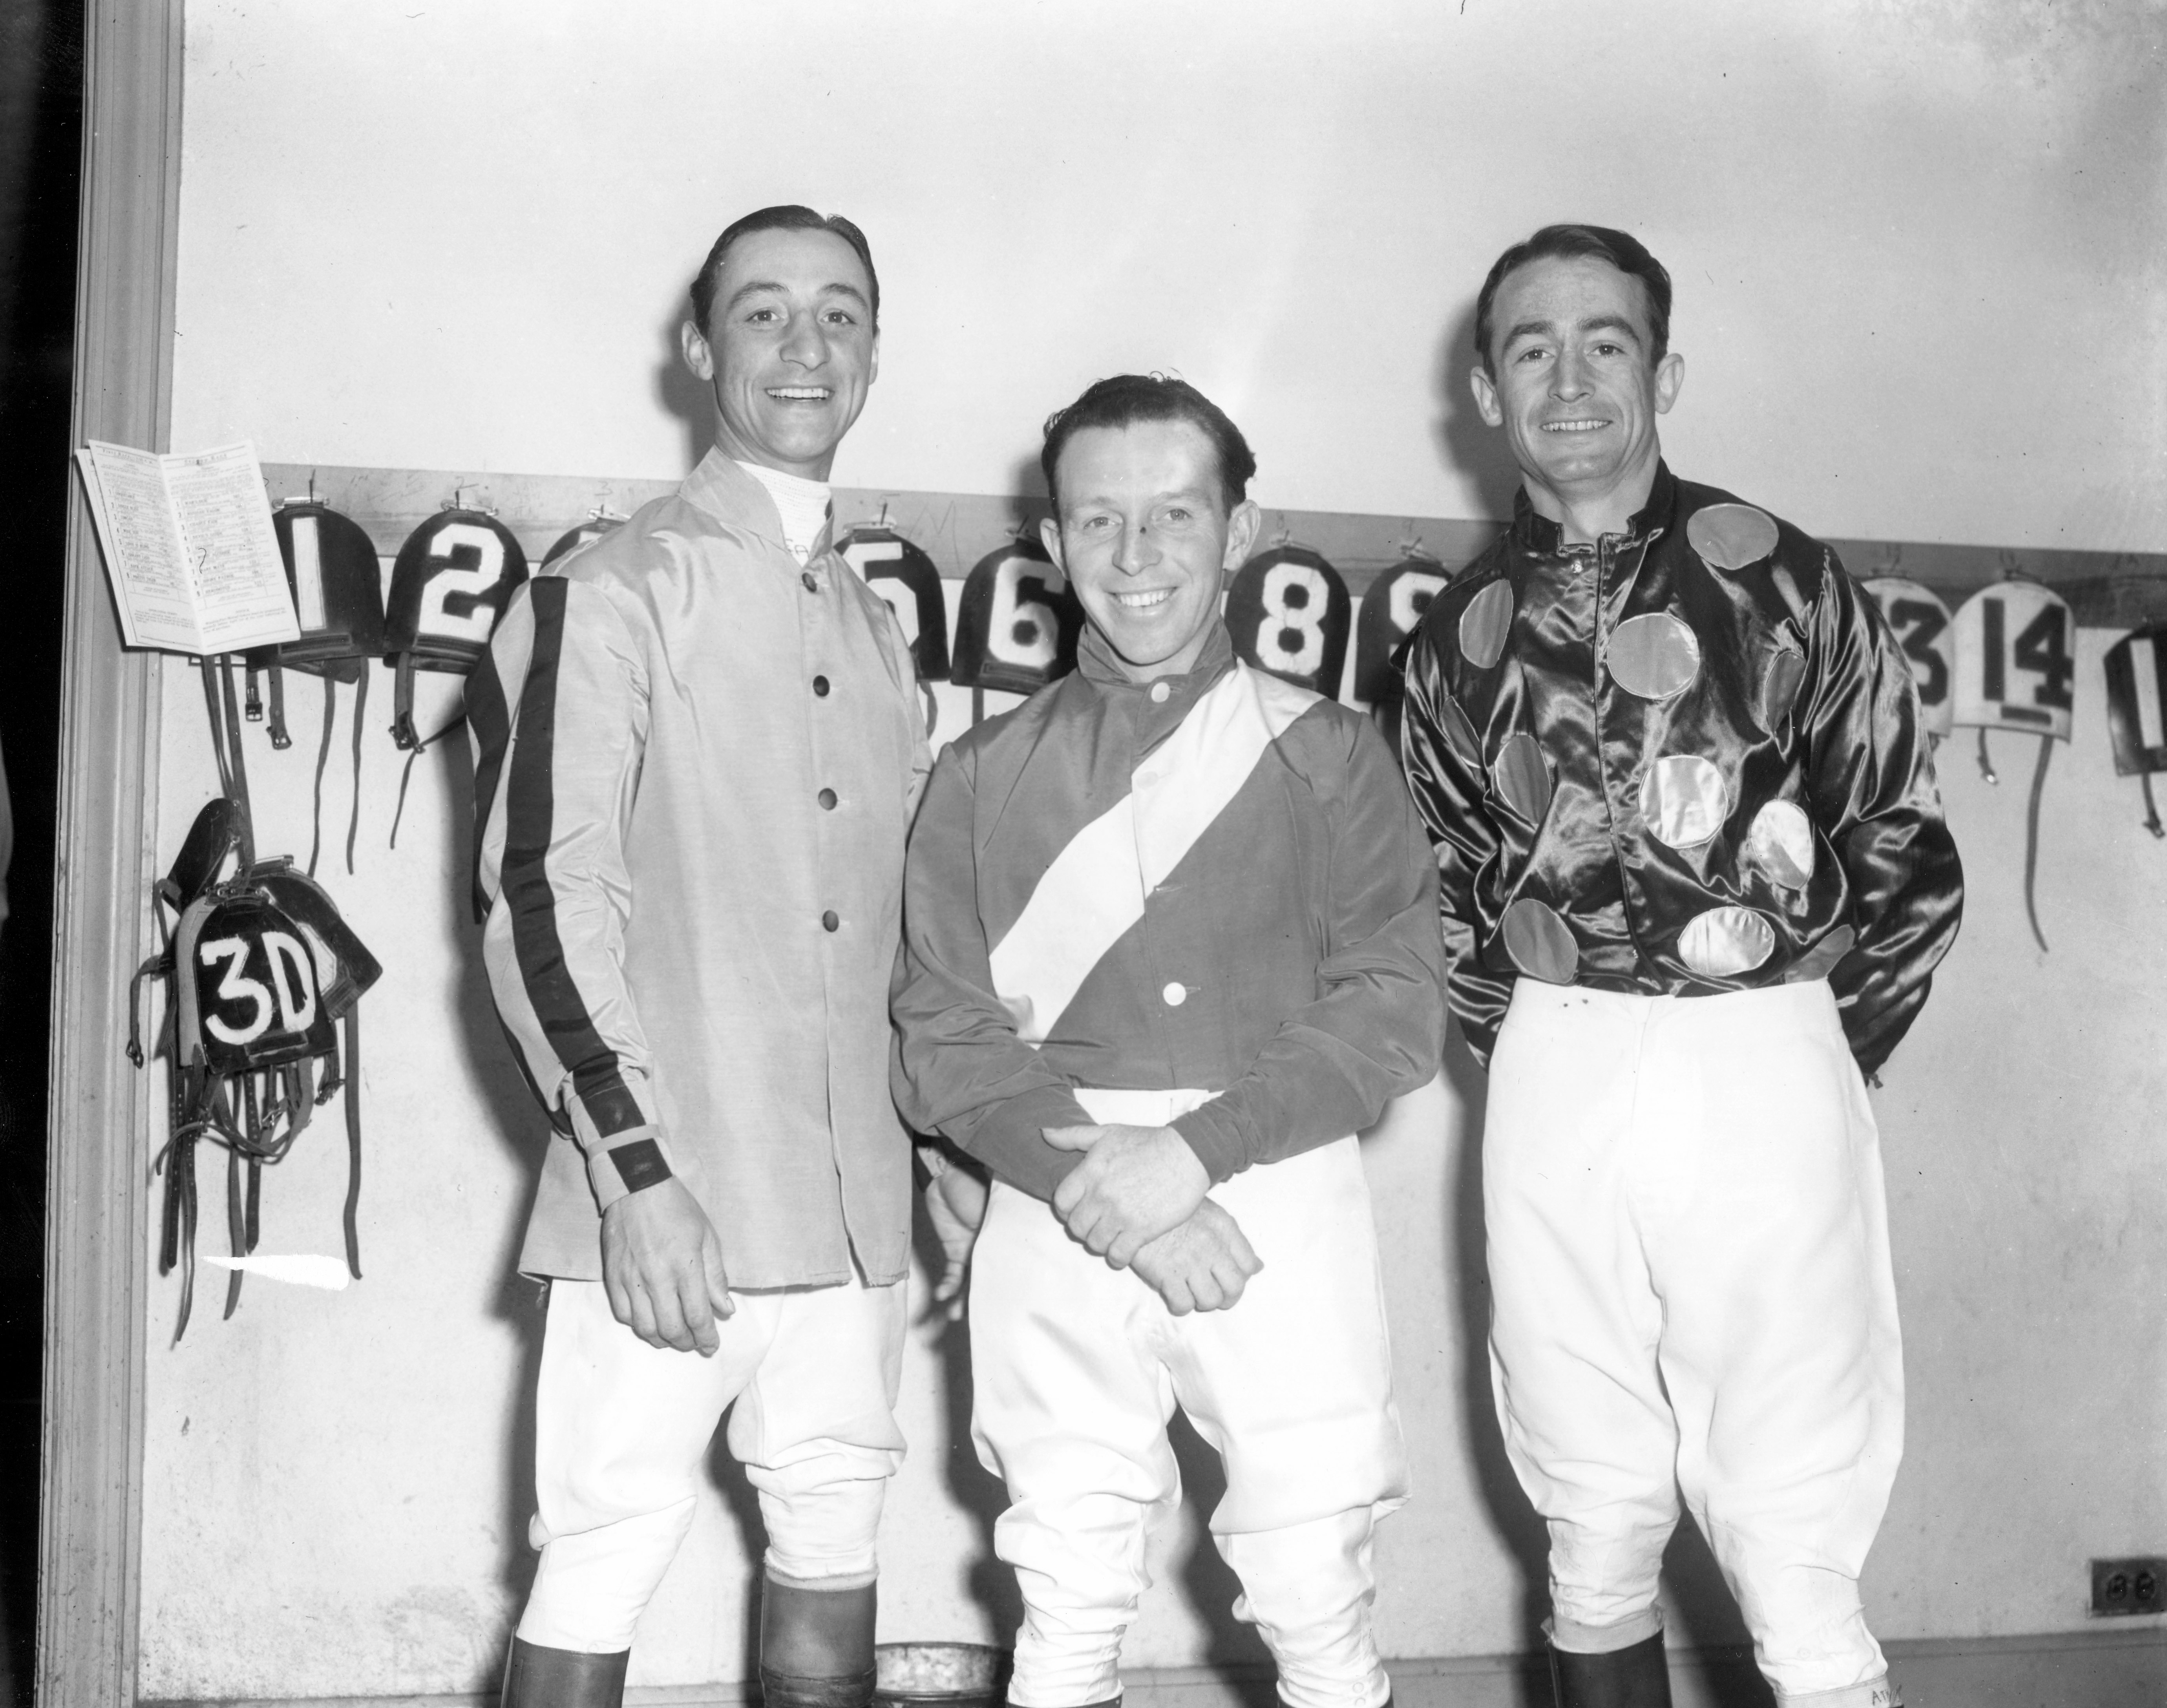 Eddie Arcaro, John Adams, and Ted Atkinson in the jock's room (Keeneland Library Morgan Collection/Museum Collection)